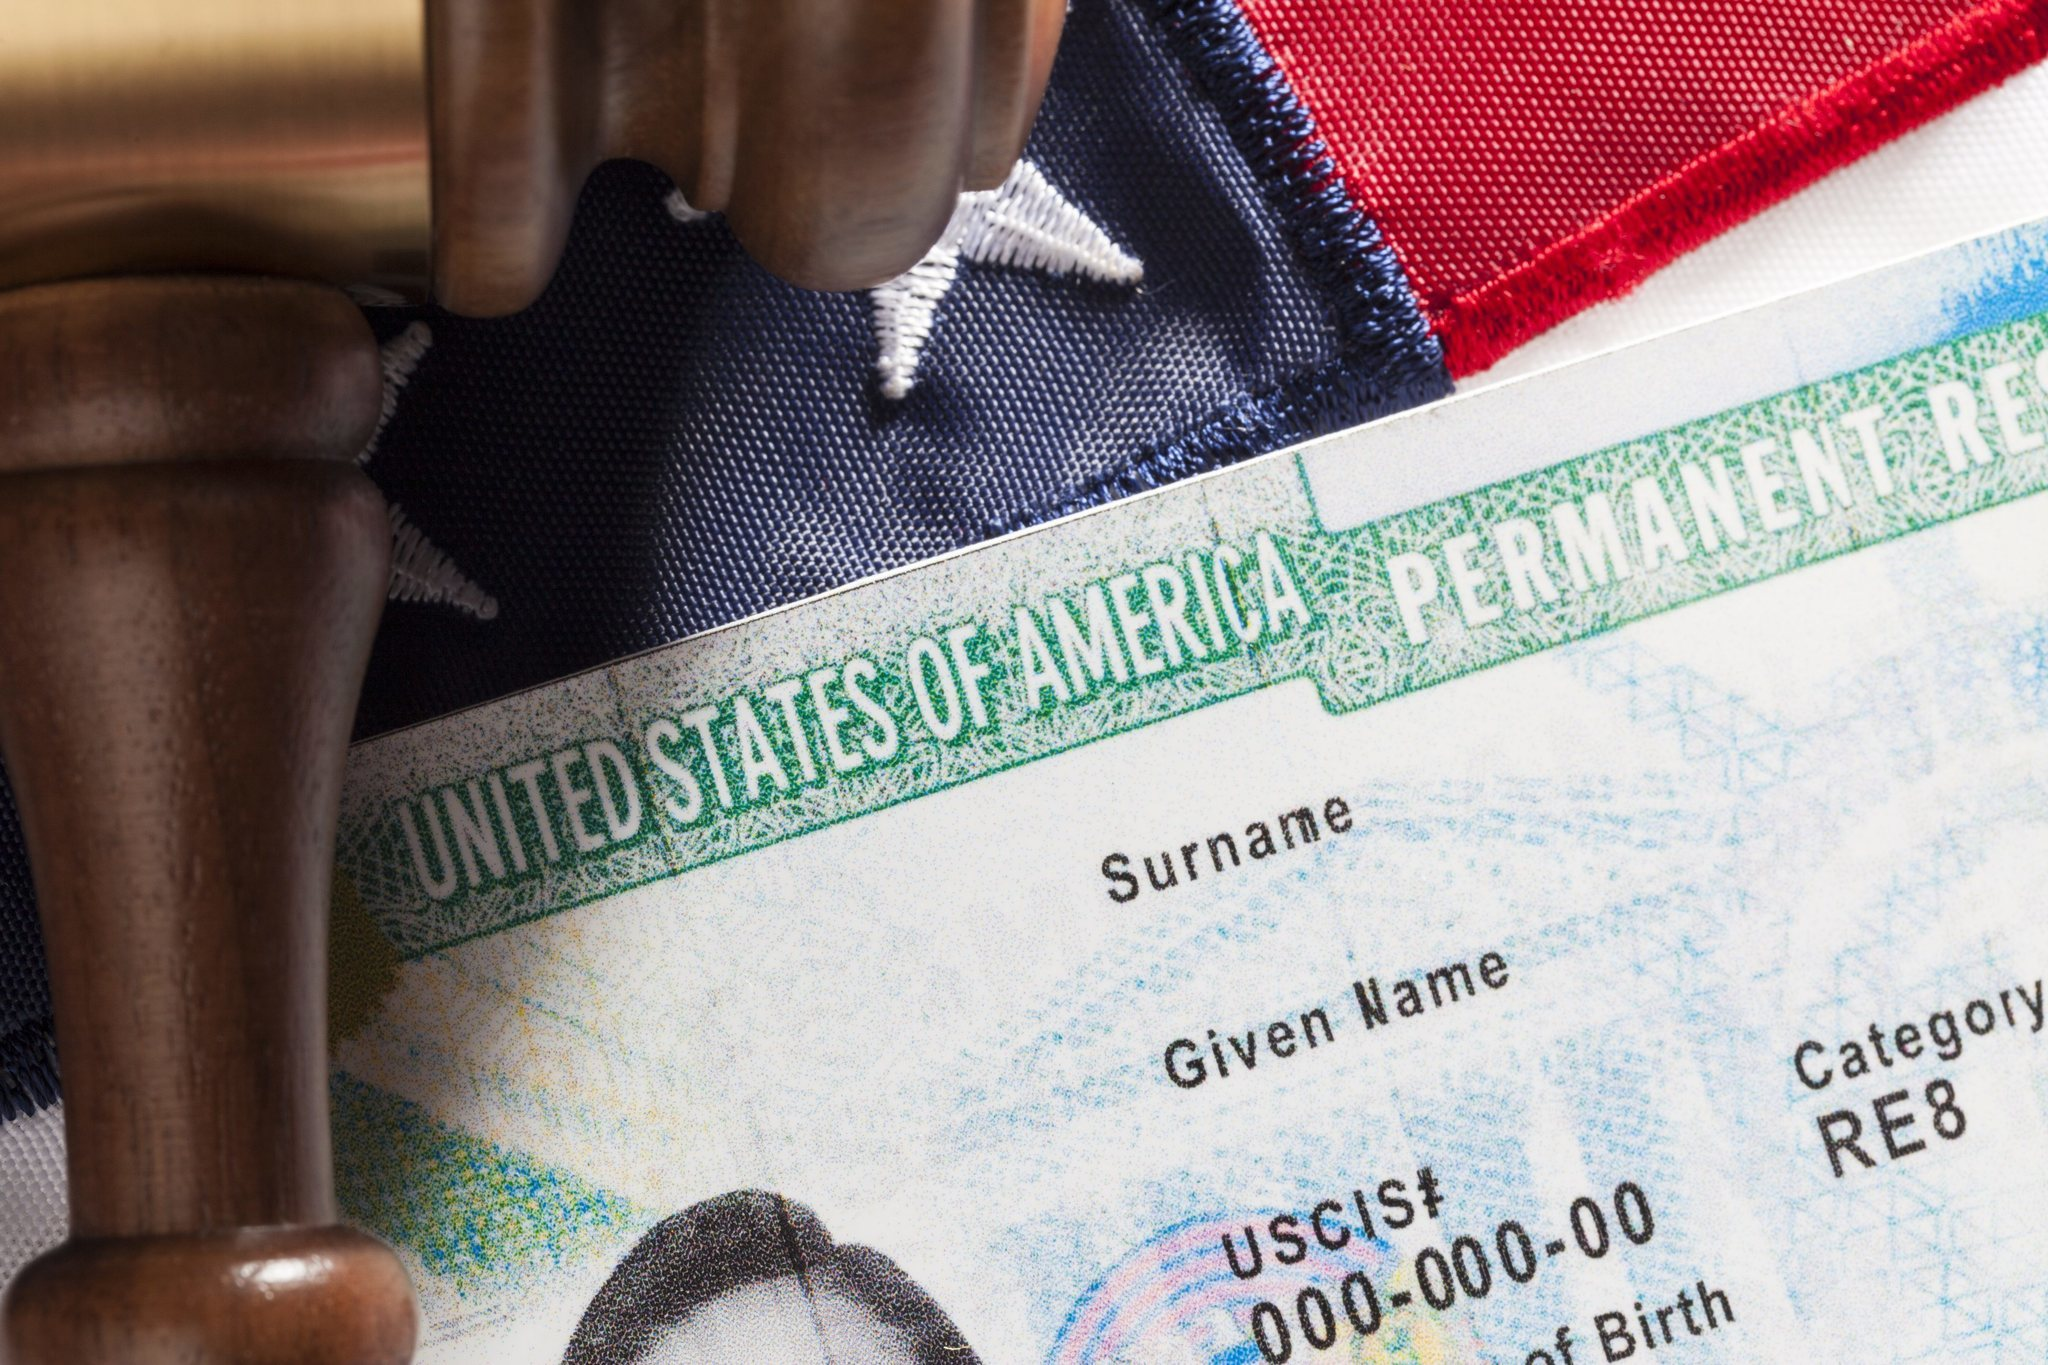 ALLAN WERNICK: Options for when your green card expires after an extended period abroad